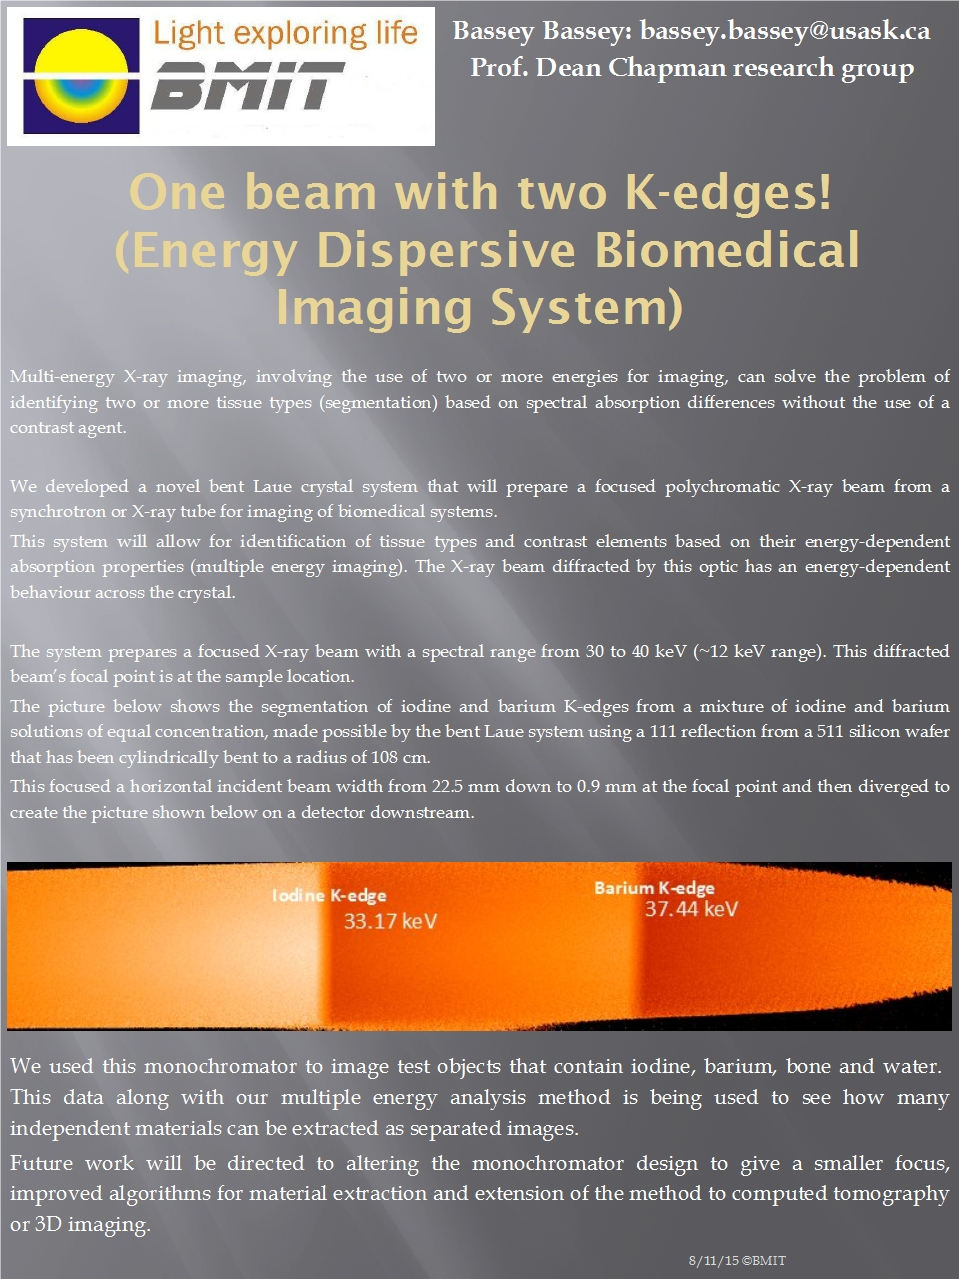 One Beam With Two K-Edges! Image